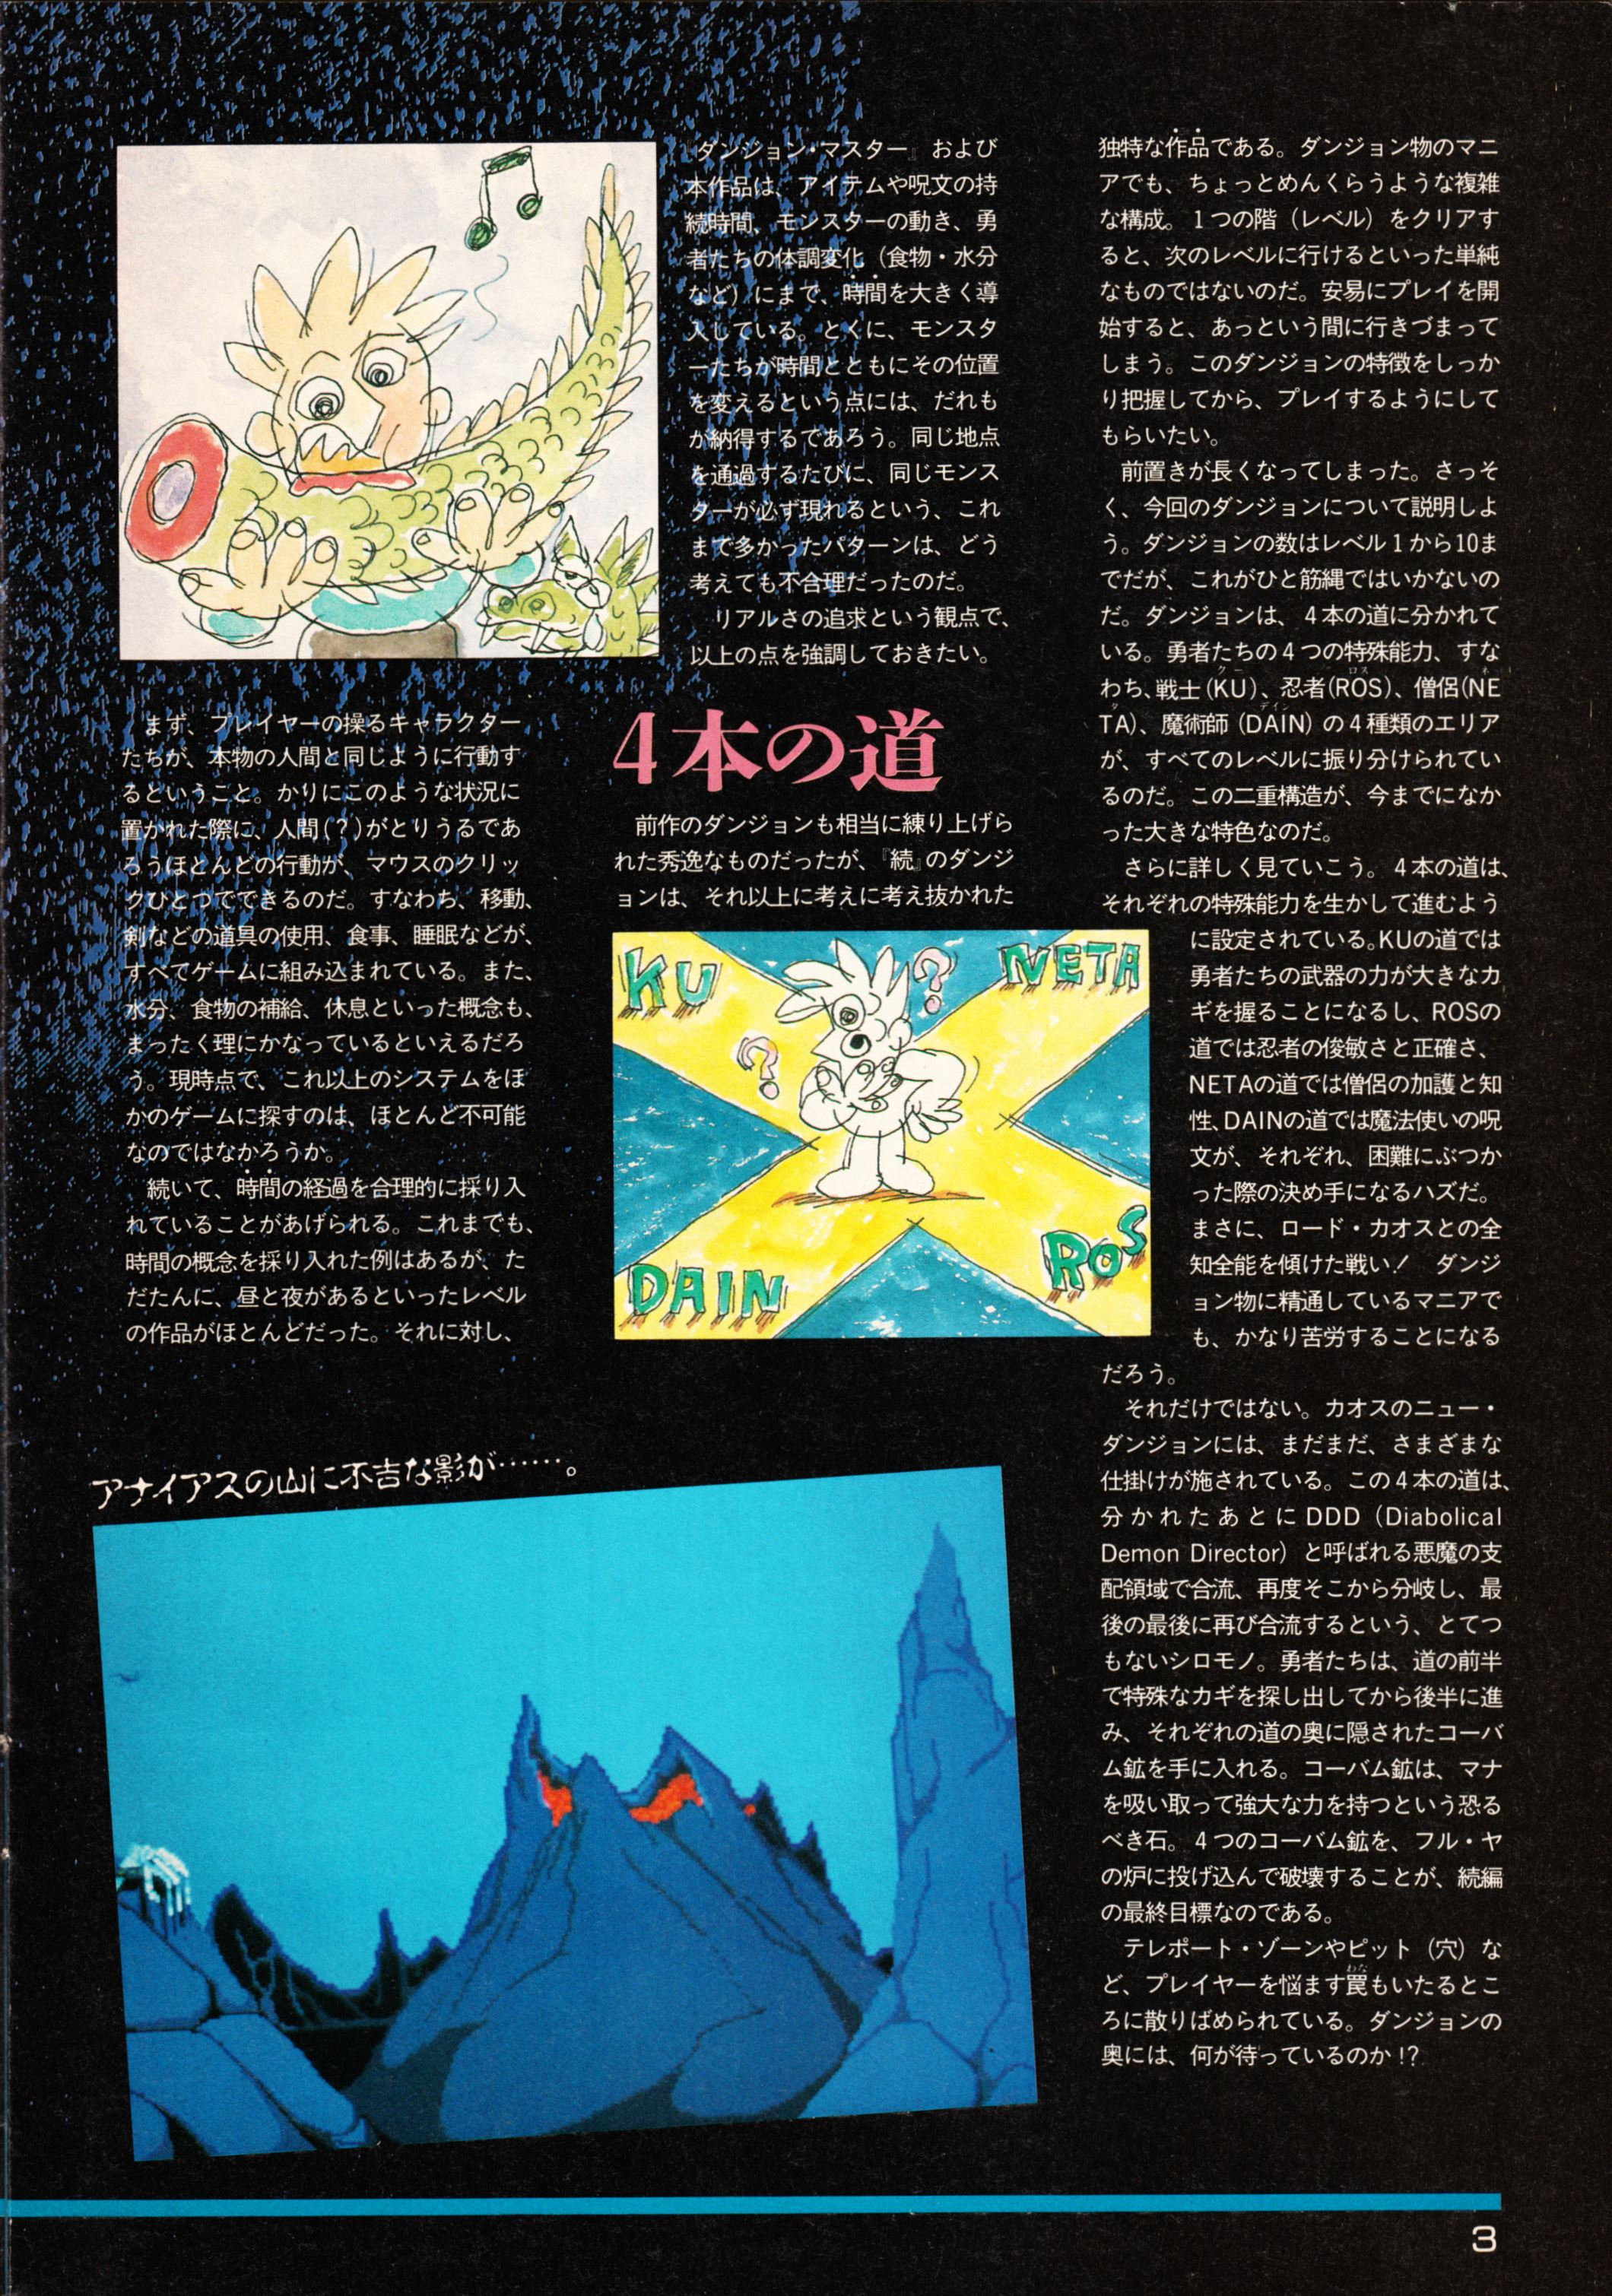 Supplement 1 - Chaos Strikes Back Companion Guide Guide published in Japanese magazine 'Popcom', Vol 9 No 2 01 February 1991, Page 5